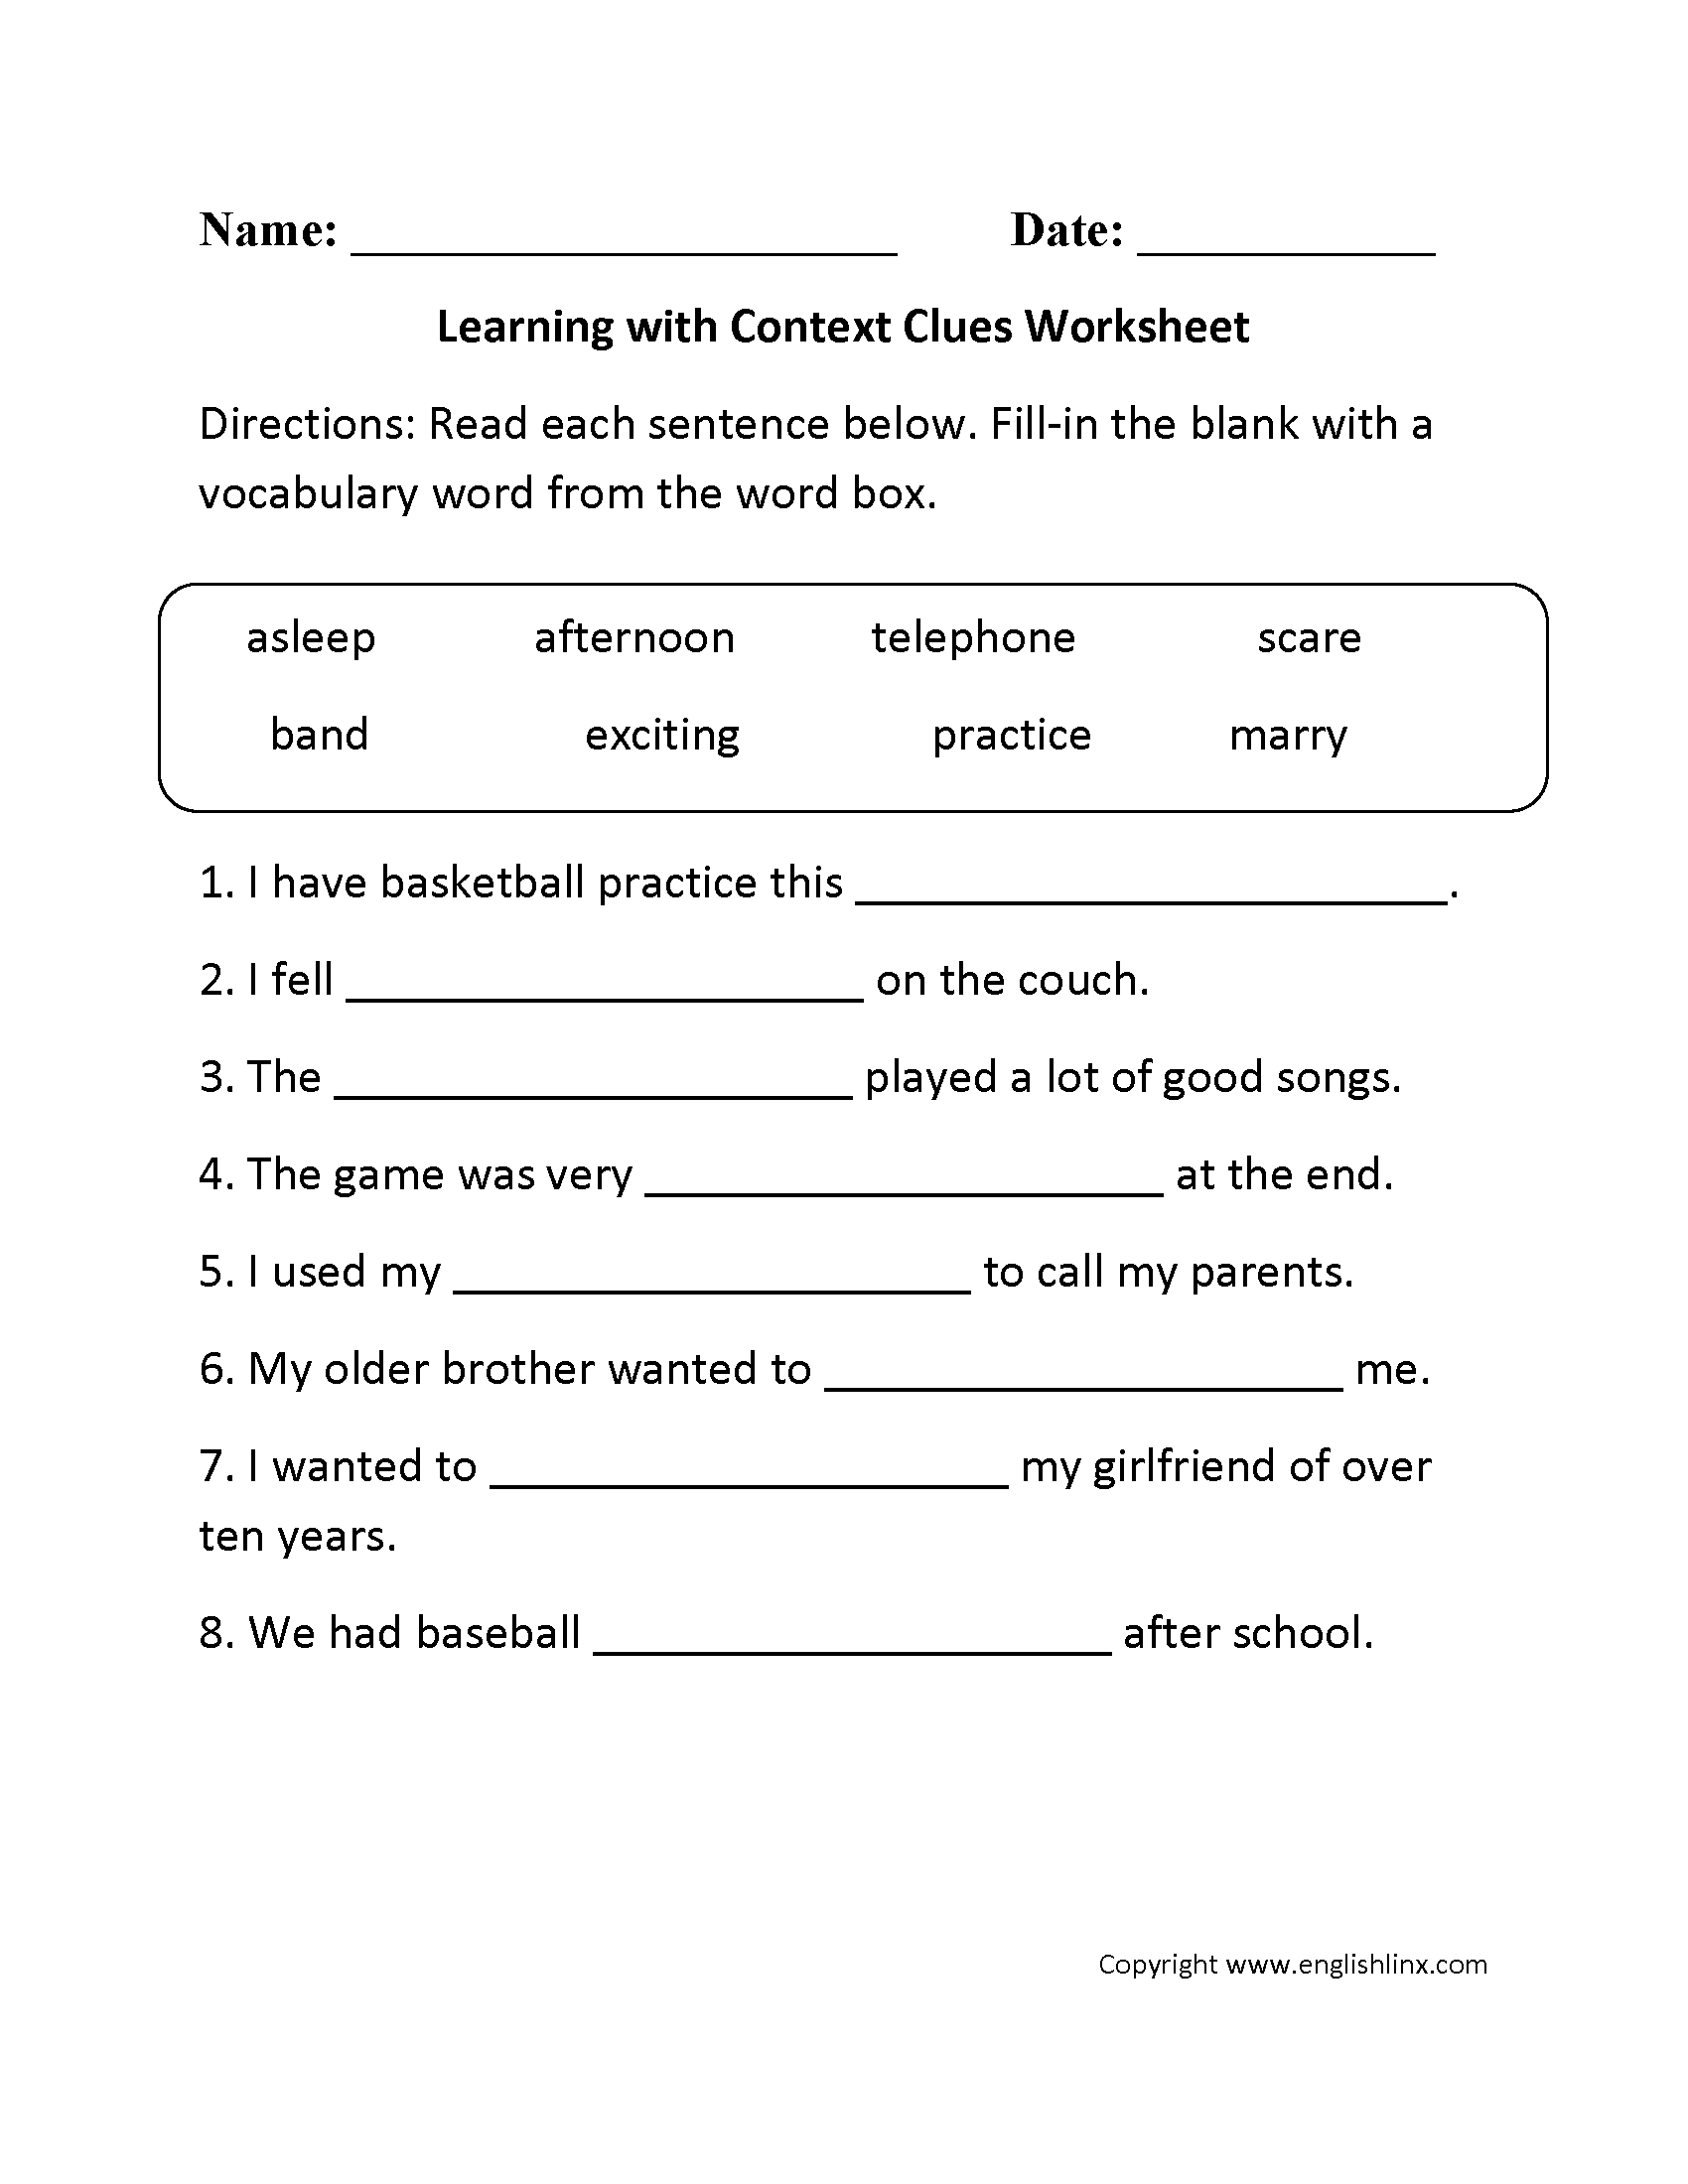 image relating to Clue Sheets Printable called Looking through Worksheets Context Clues Worksheets